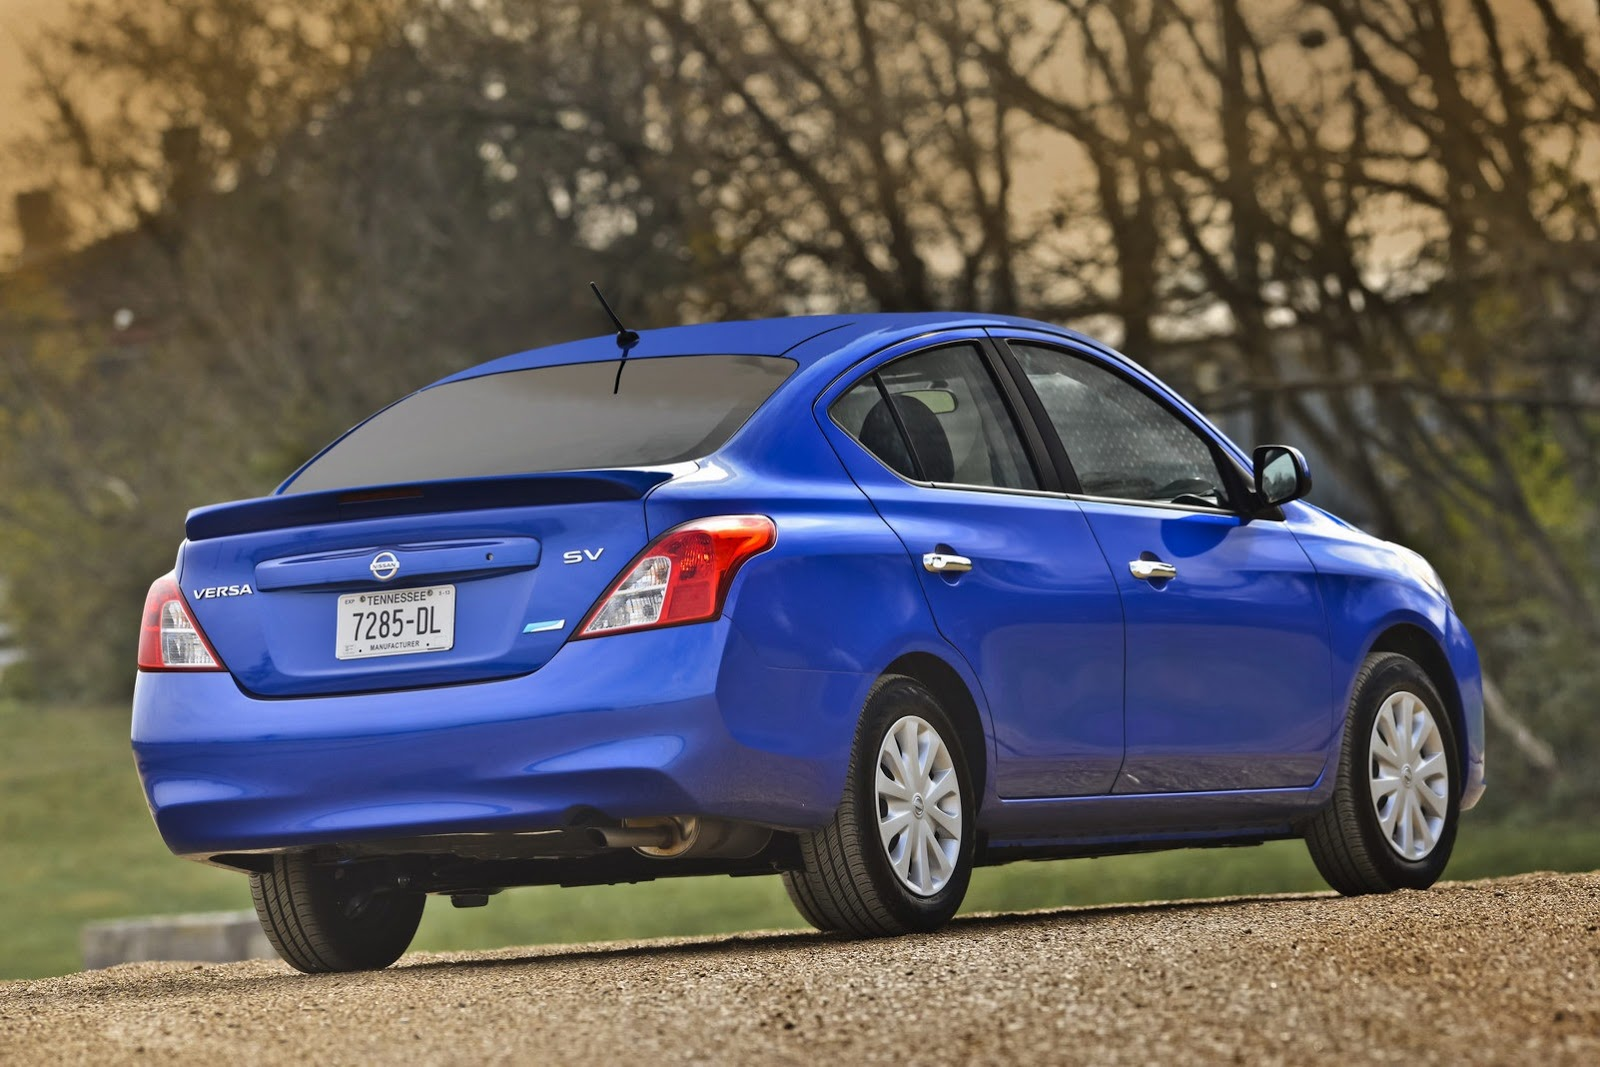 2014 Nissan Versa Details and Pricing - Photo Gallery - autoevolution